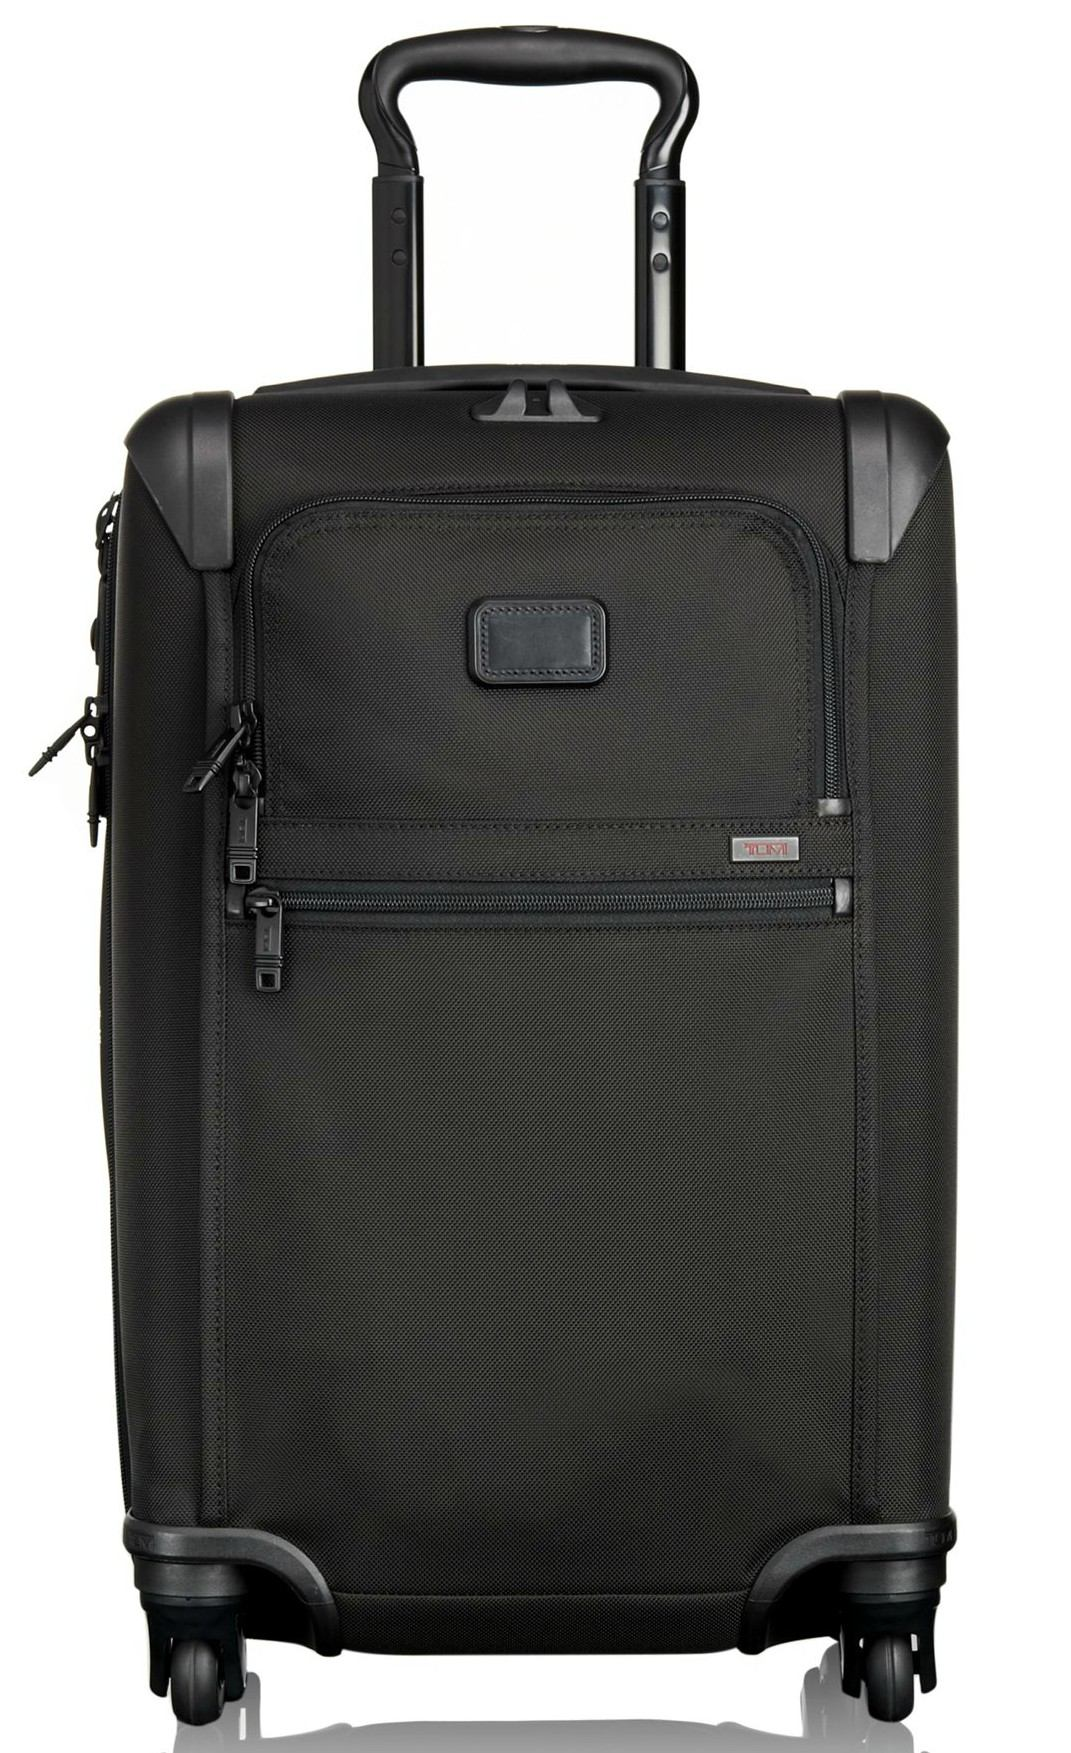 Best Carry-On Luggage 2015